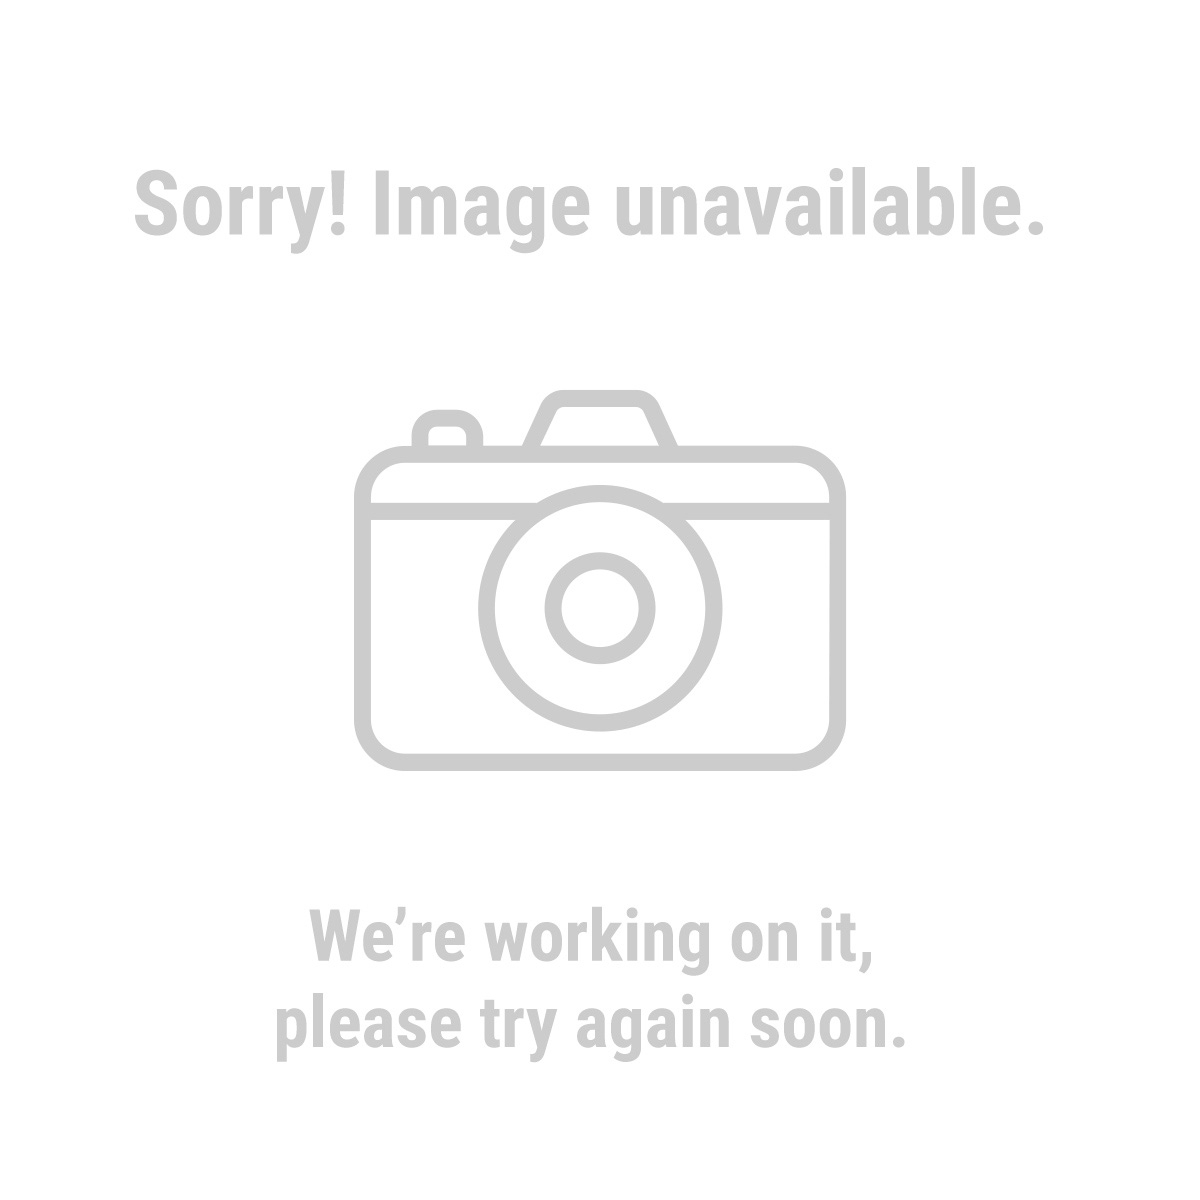 2-Shelf End Cabinet for Roller Tool Chest,